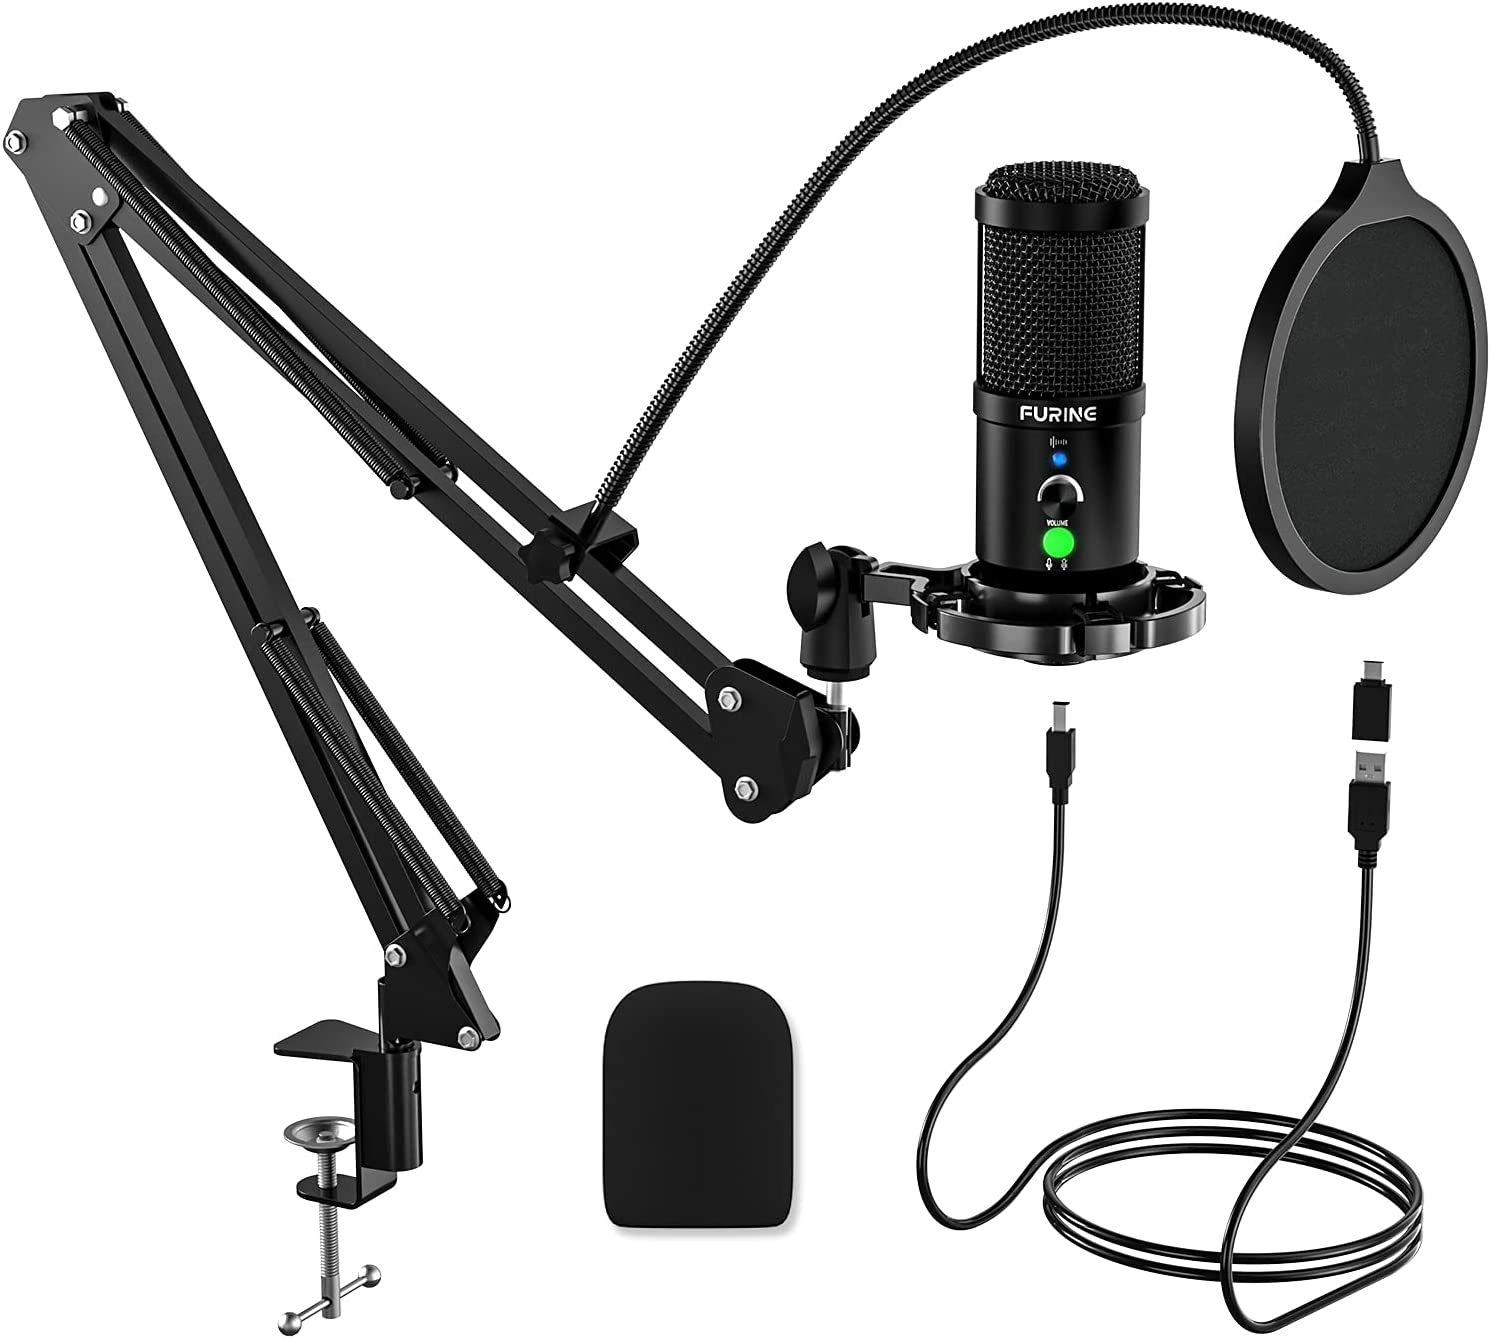 Mail order USB Microphone Luxury goods for PC FURINEGaming Noise-Ca with